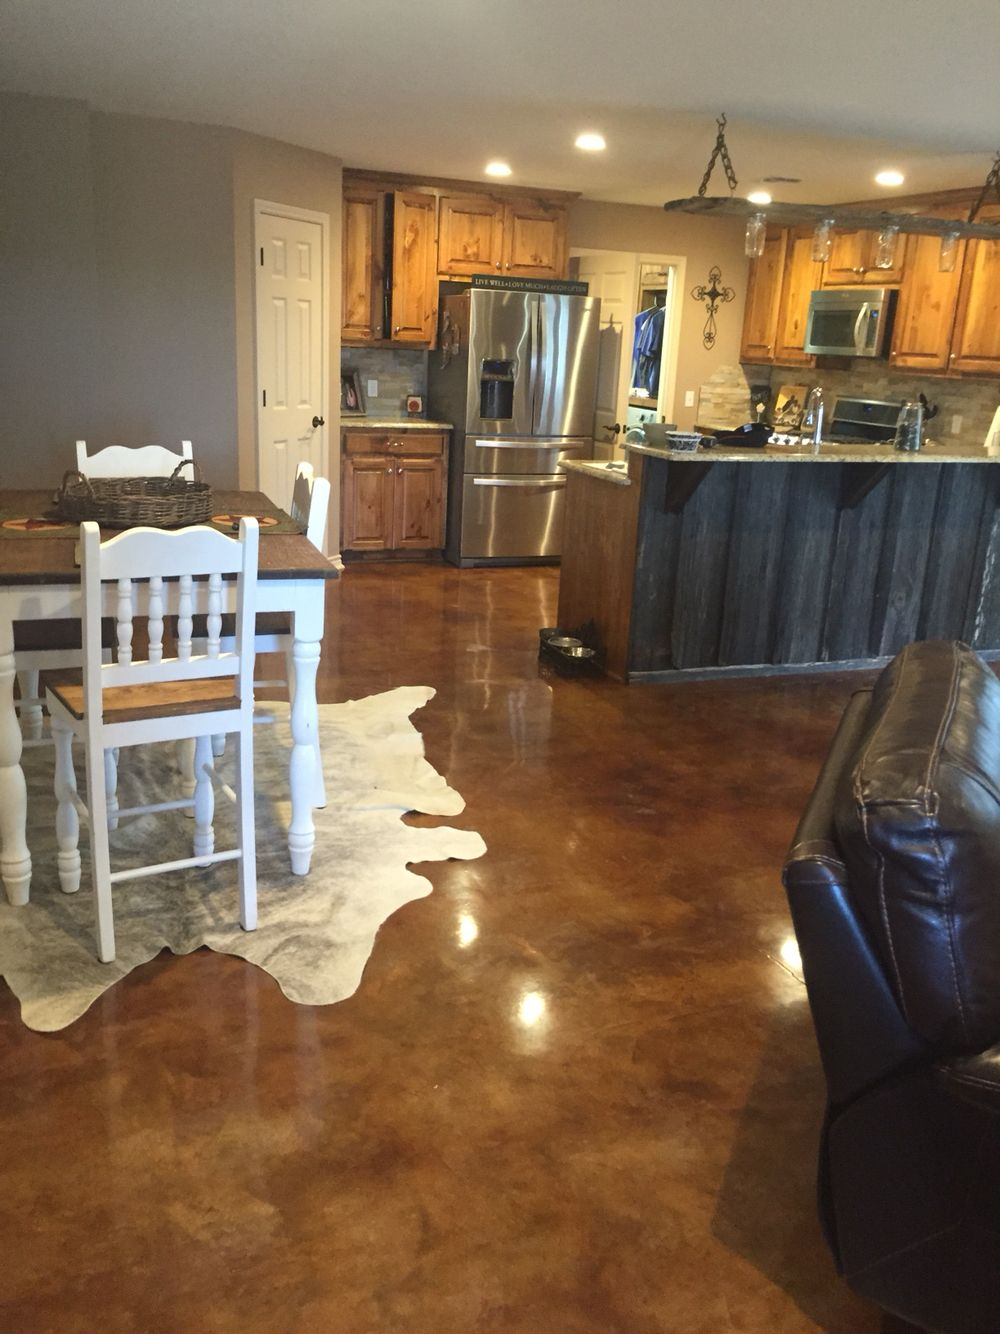 Diy Painted Concrete Floors I Am Sharing These Photos Because I Spent So Much Time Researching